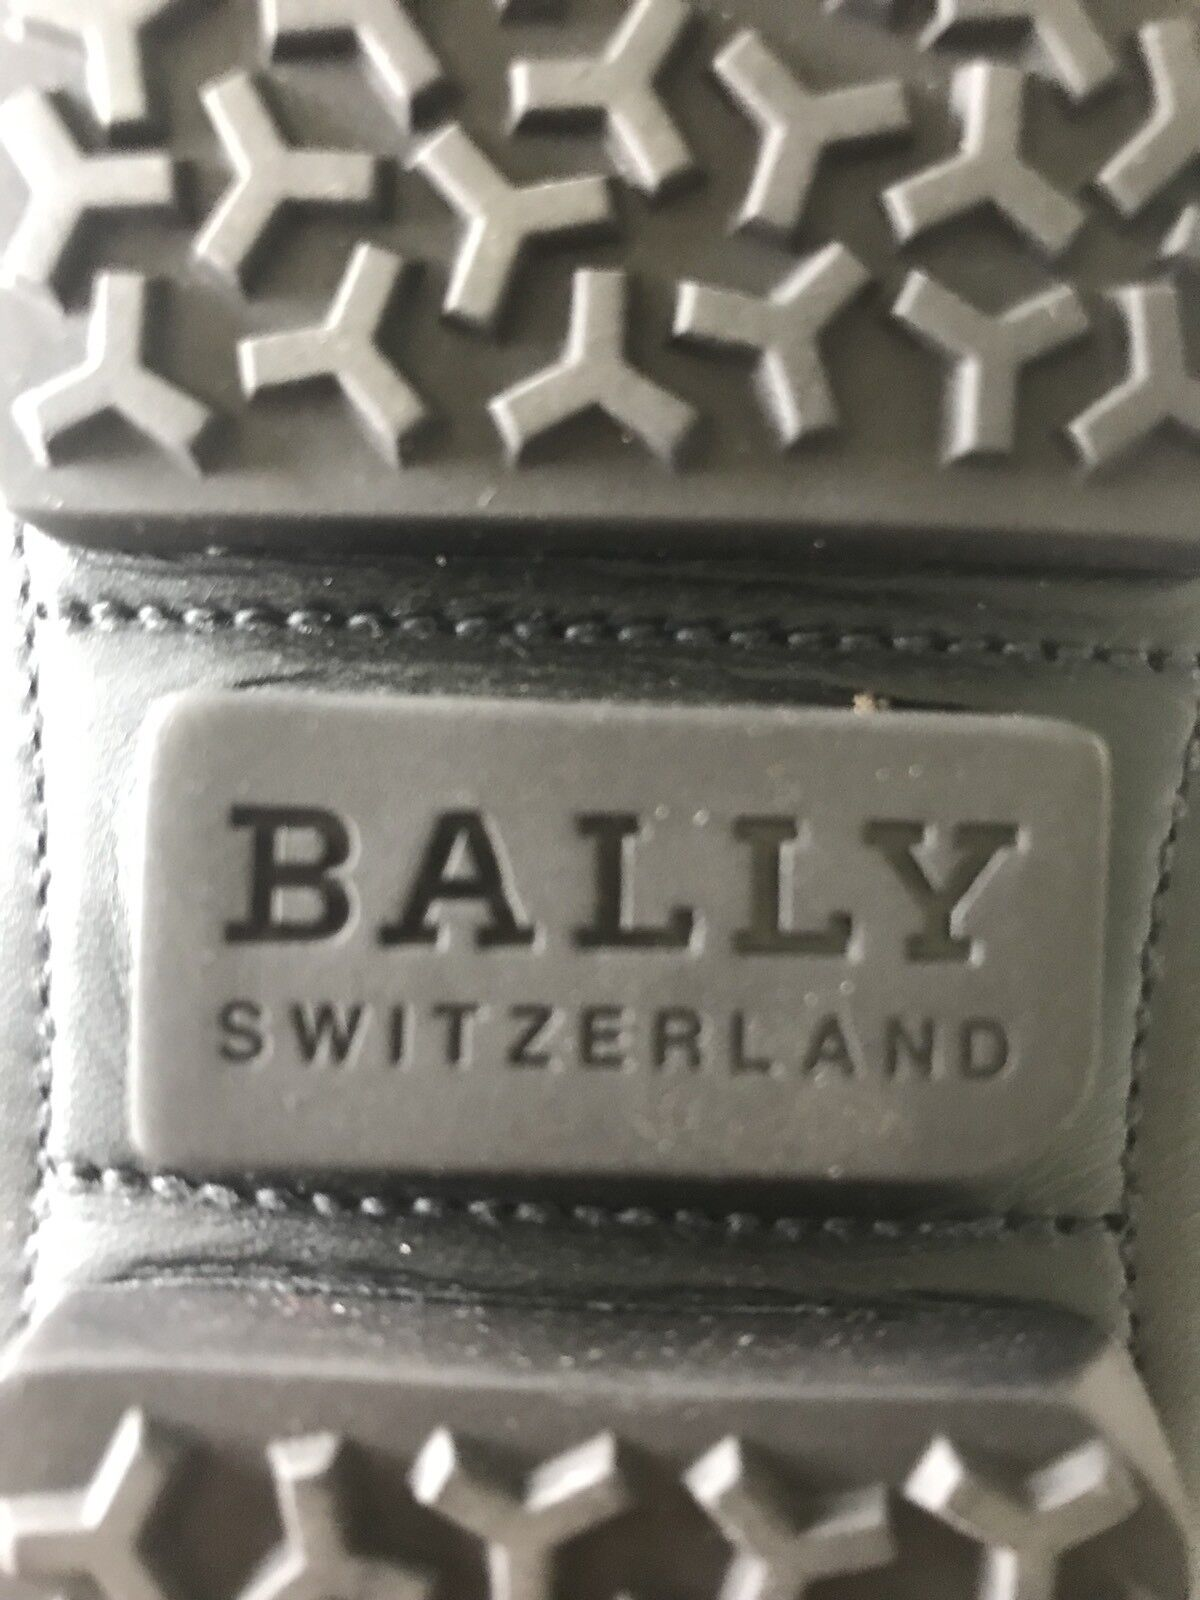 600  Bally Bally Bally Pryce nero Perforated Leather Driver Dimensione US 11.5 Made in  0f8f26